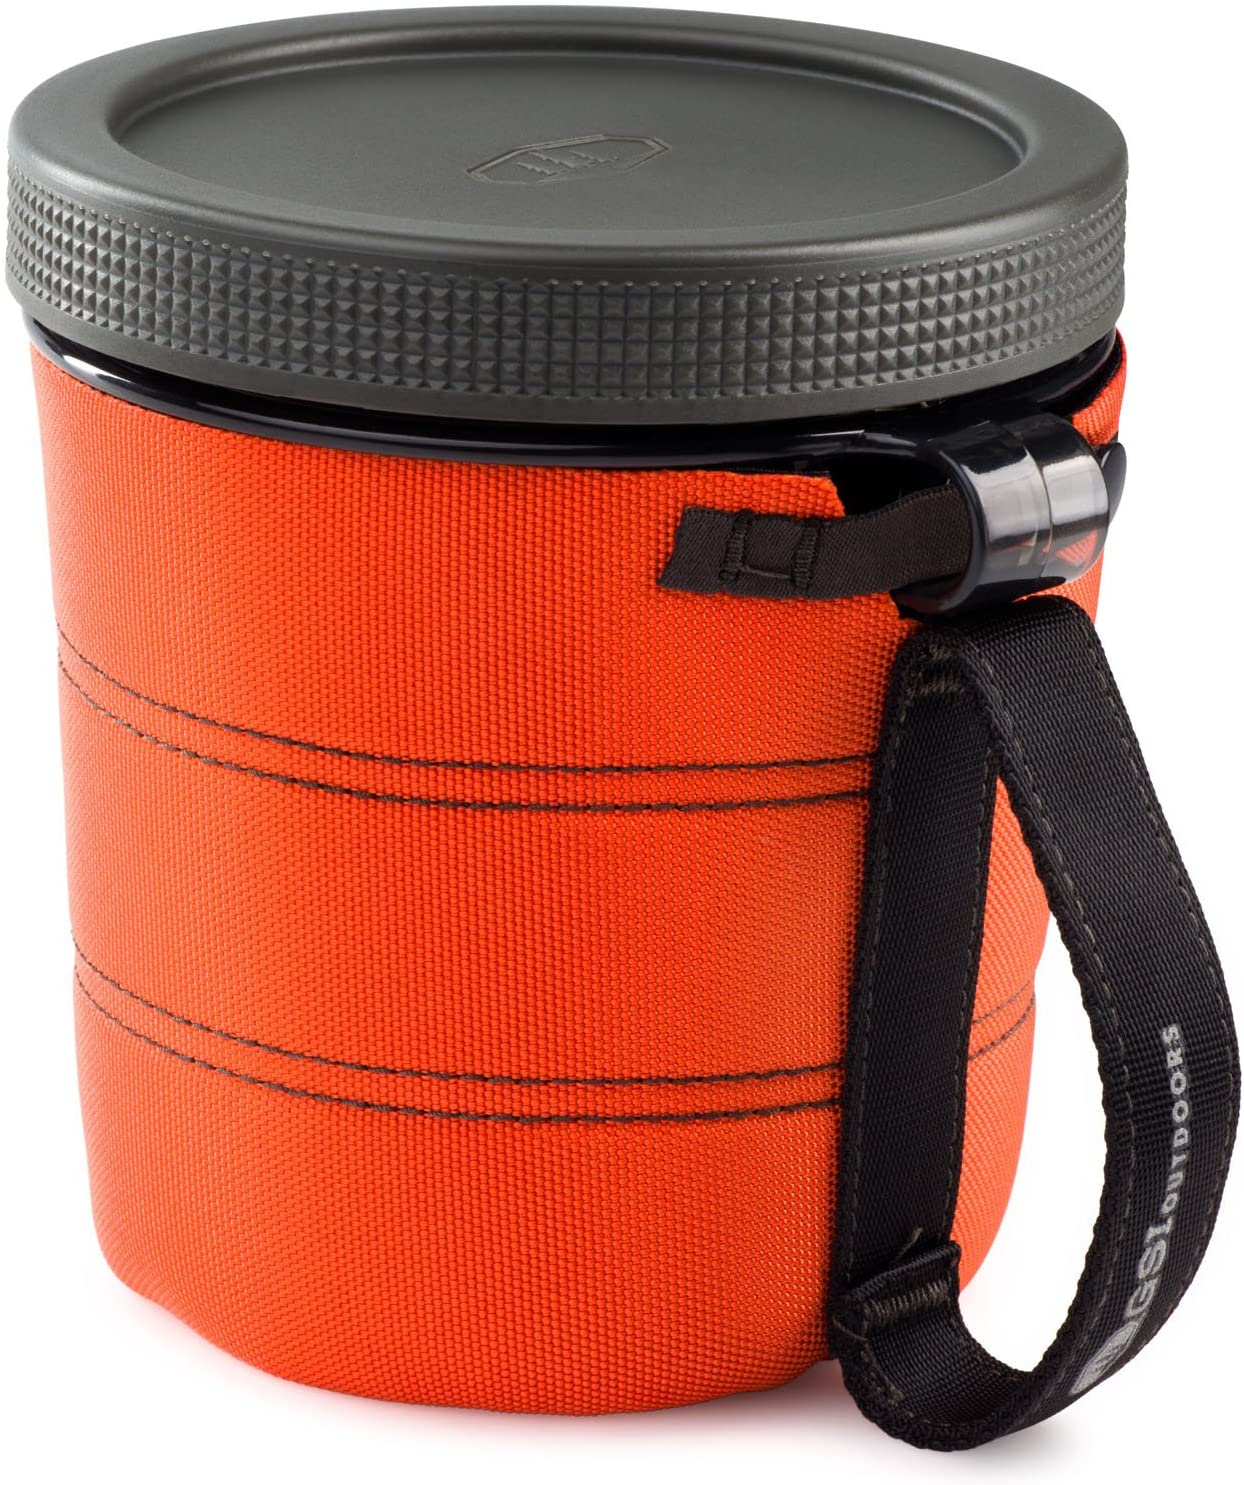 GSI Fairshare Mug II 32oz